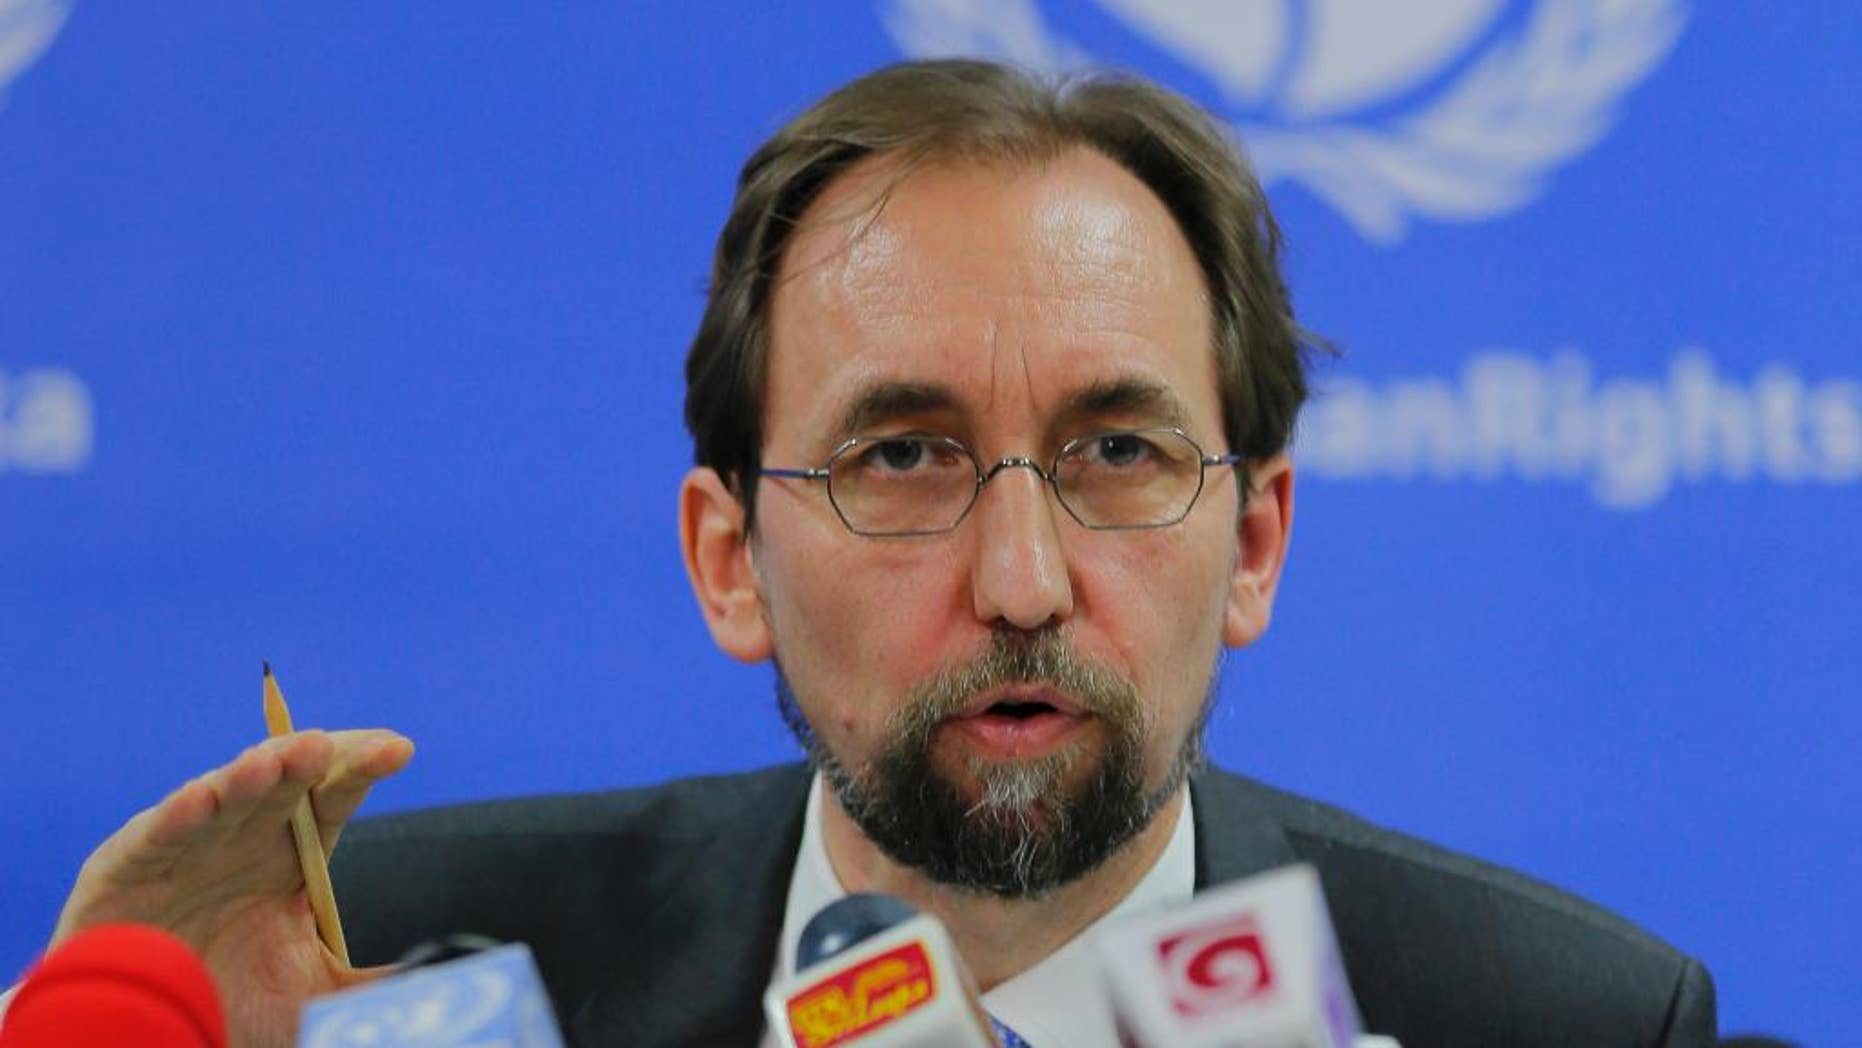 """FILE - In this Feb. 9, 2016, file photo, United Nations High Commissioner for Human Rights Zeid Ra'ad al-Hussein speaks in Colombo, Sri Lanka. The U.N. human rights chief said on Wednesday, Oct. 12, 2016 that U.S. presidential candidate Donald Trump would be """"dangerous from an international point of view"""" if he is elected. (AP Photo/Eranga Jayawardena, File)"""